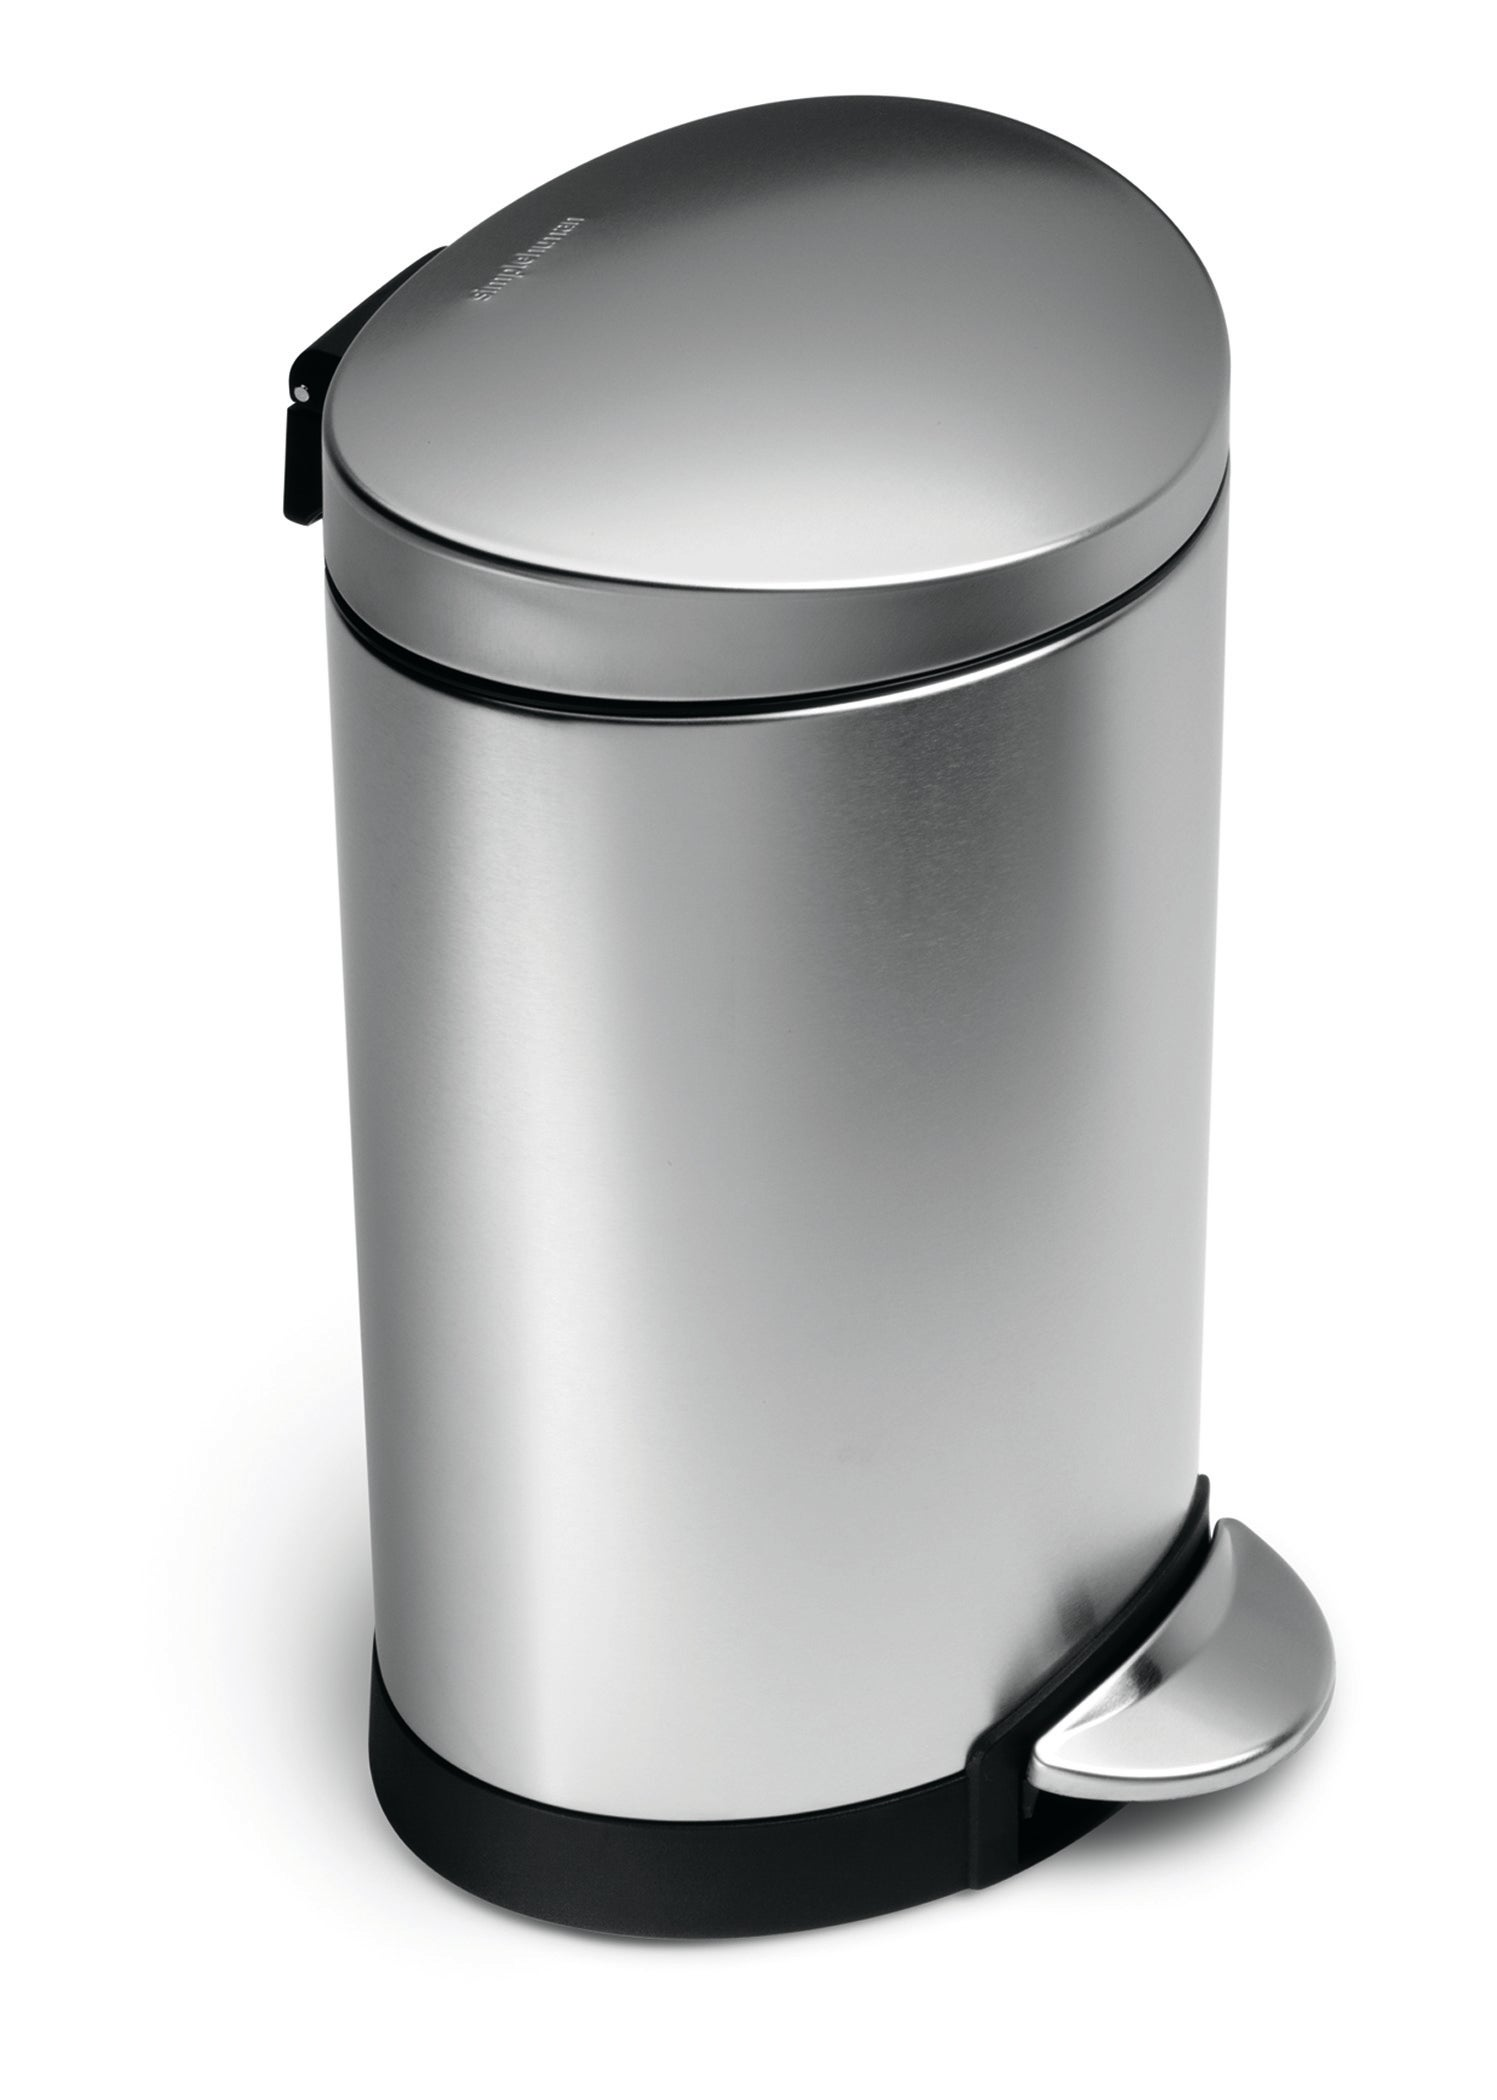 simplehuman Deluxe 6 Litre Semi-Round Stainless Steel Pedal Bin